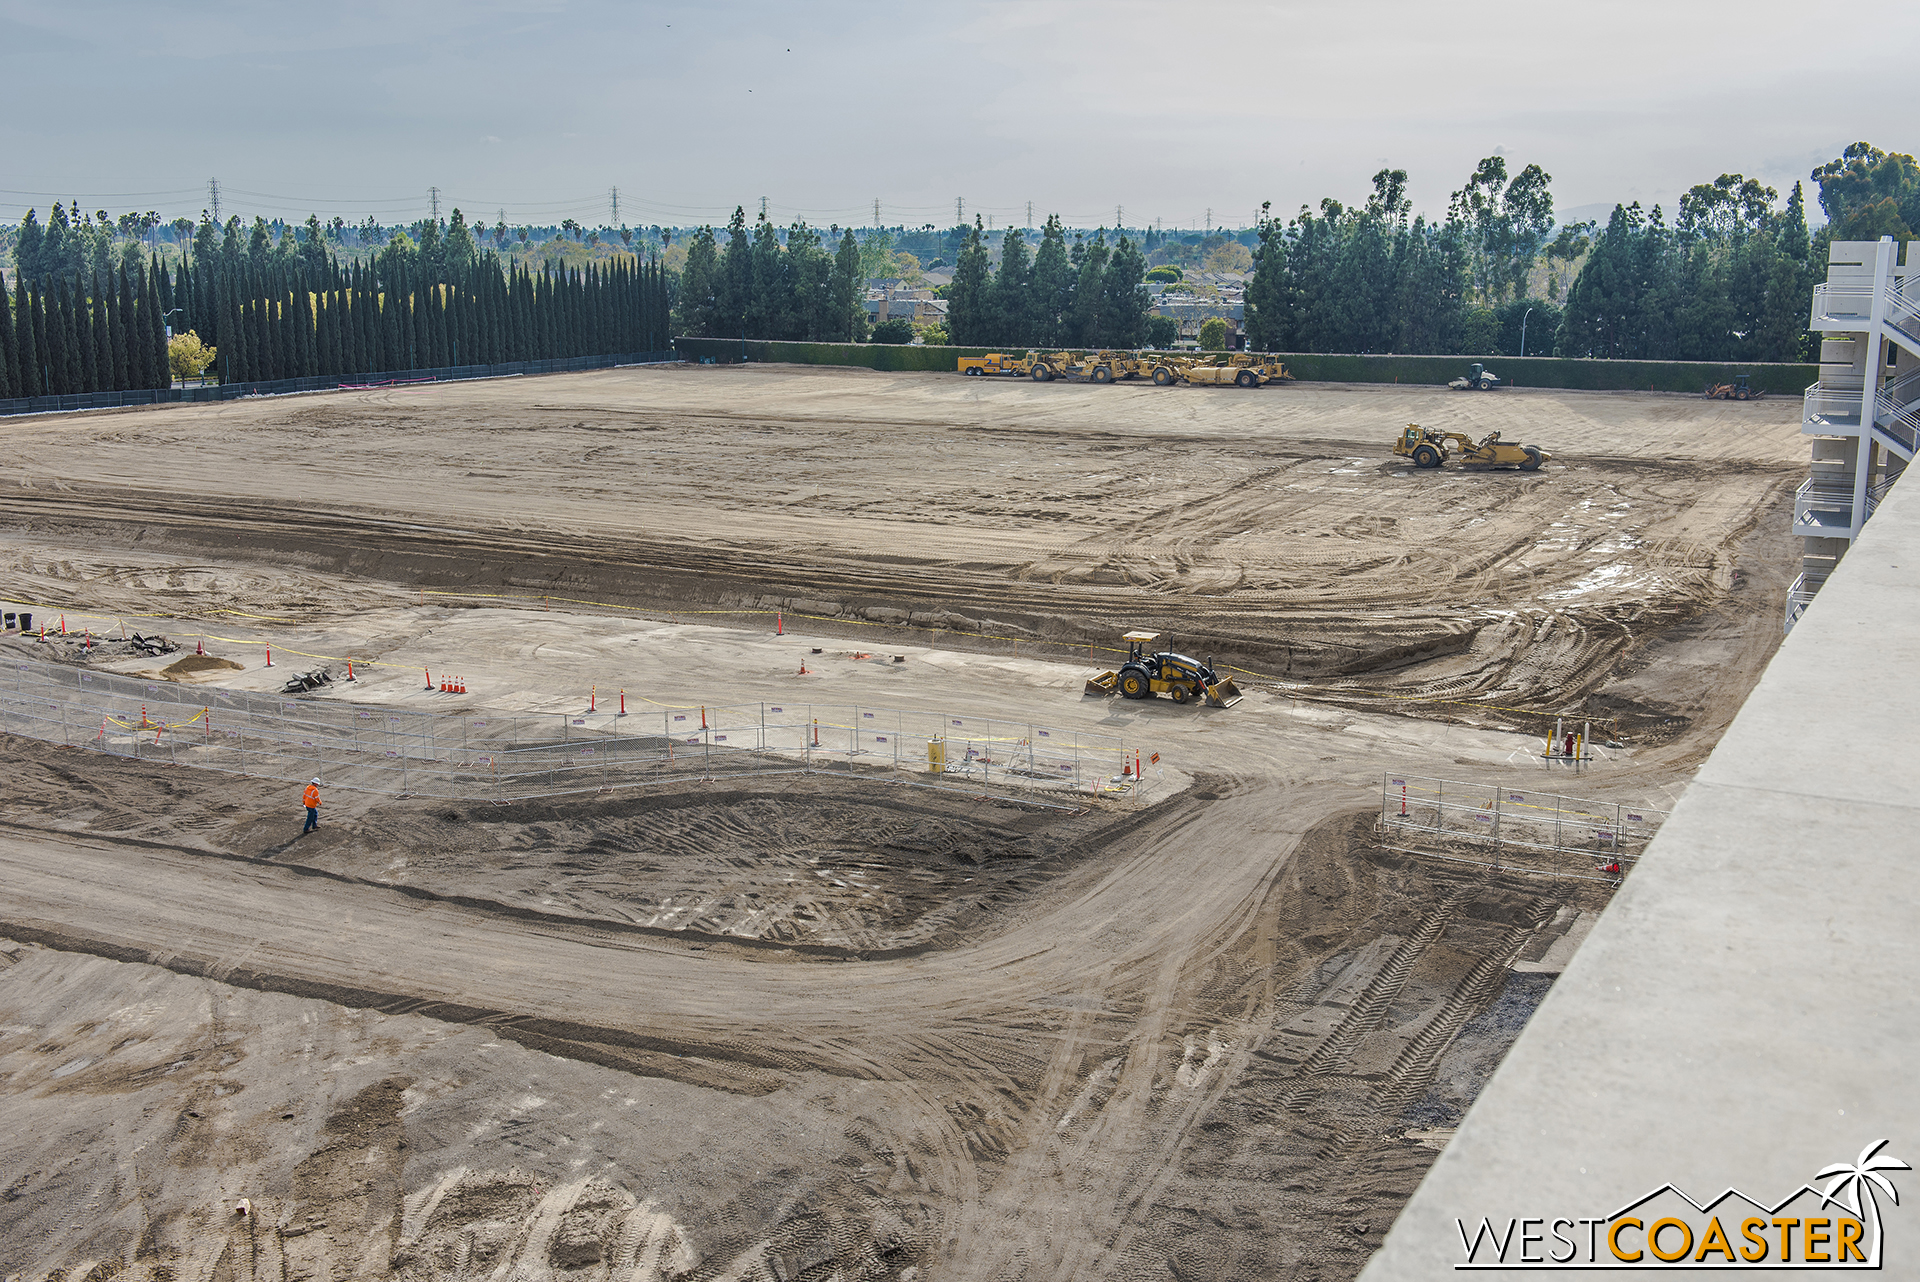 """Beyond that, what was the Pinocchio lot is definitely all soil now. But we'll still remember it by calling this future parking structure the """"Pinocchio Parking Structure"""" until Disney releases an official name for it."""